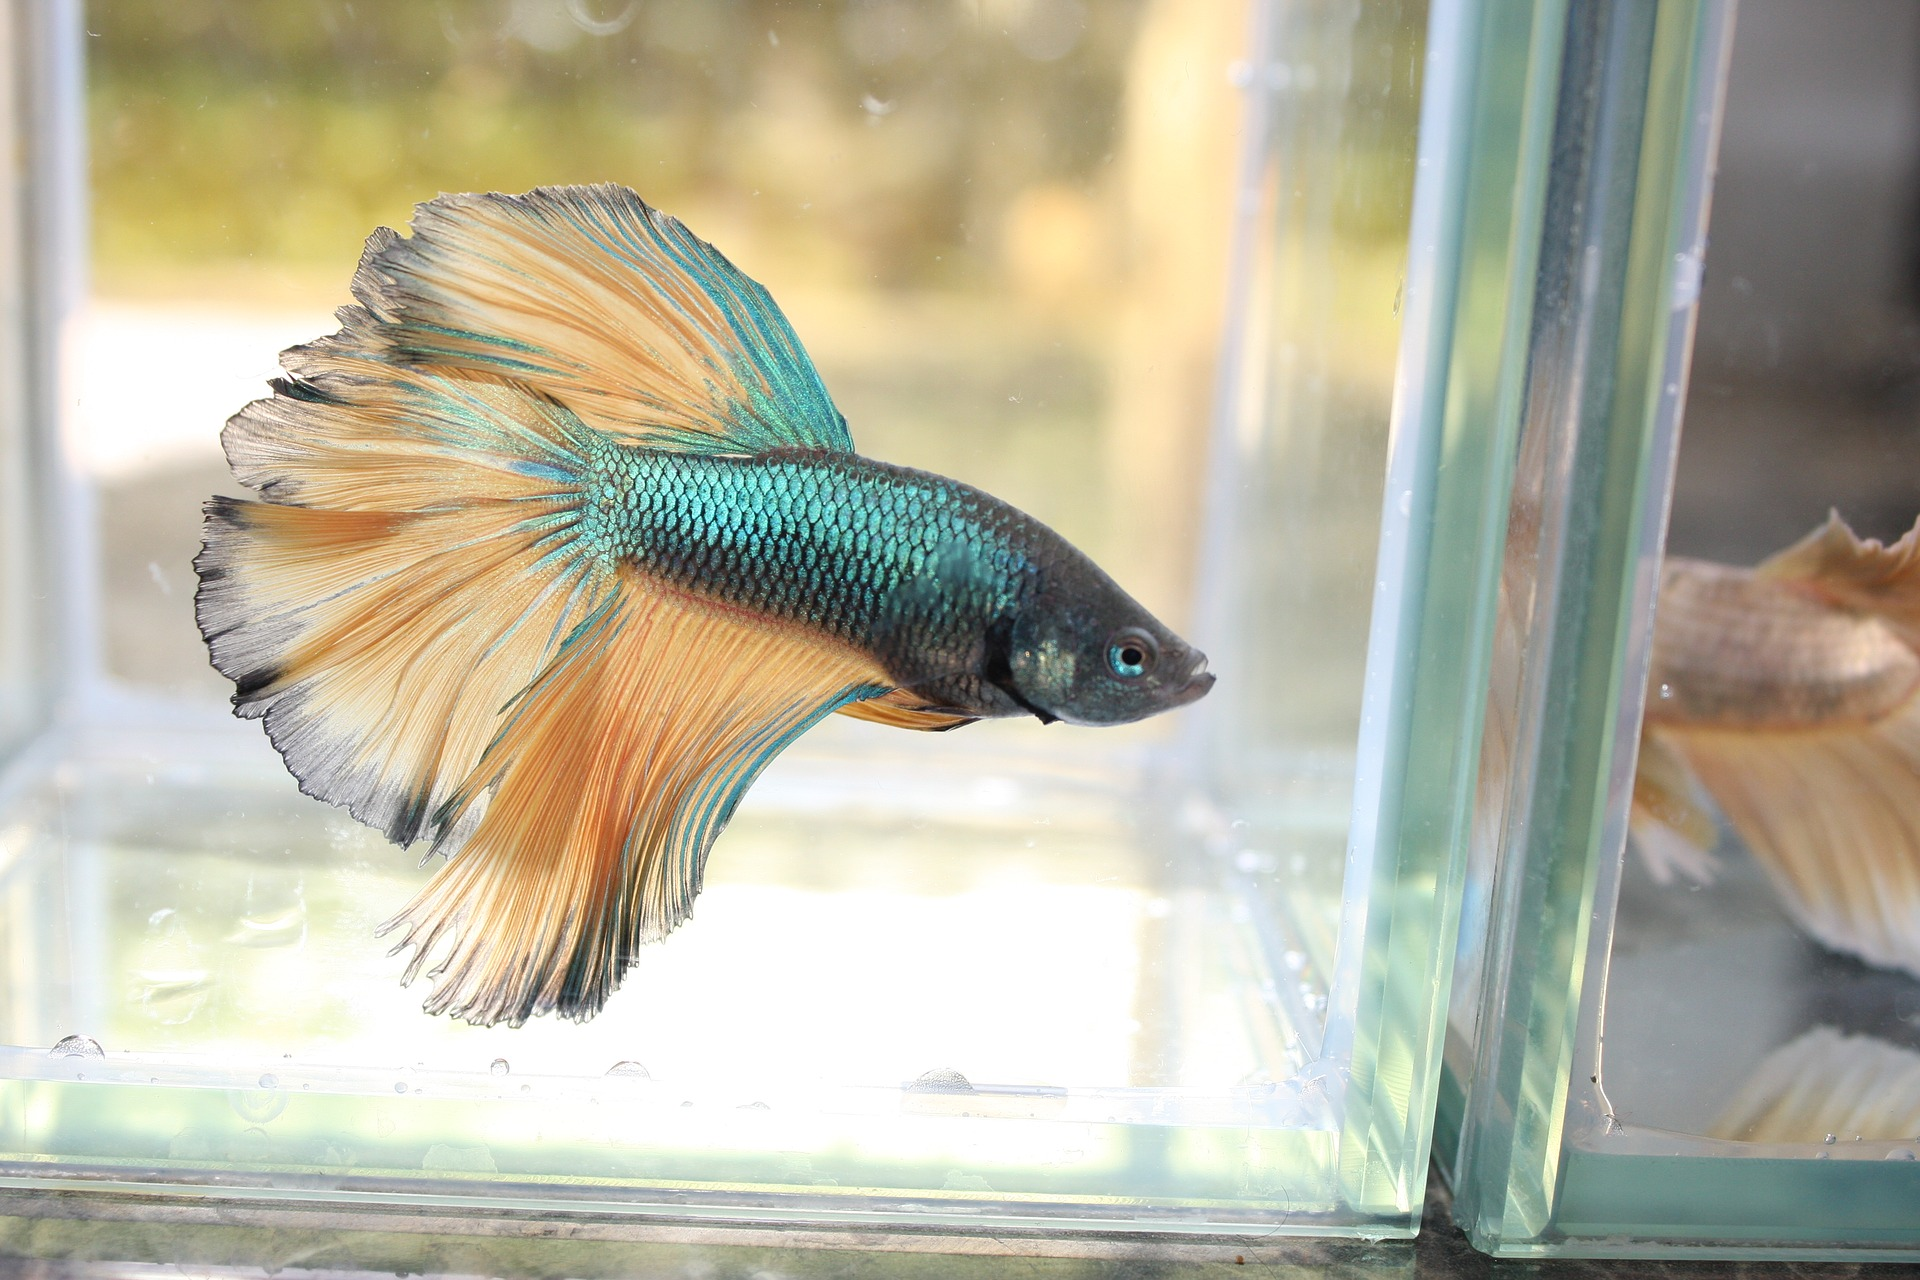 """Cruel Reality Behind the Pet Trade of the Betta Fish, a Fish Often Marketed as an """"Easy Starter Fish"""""""